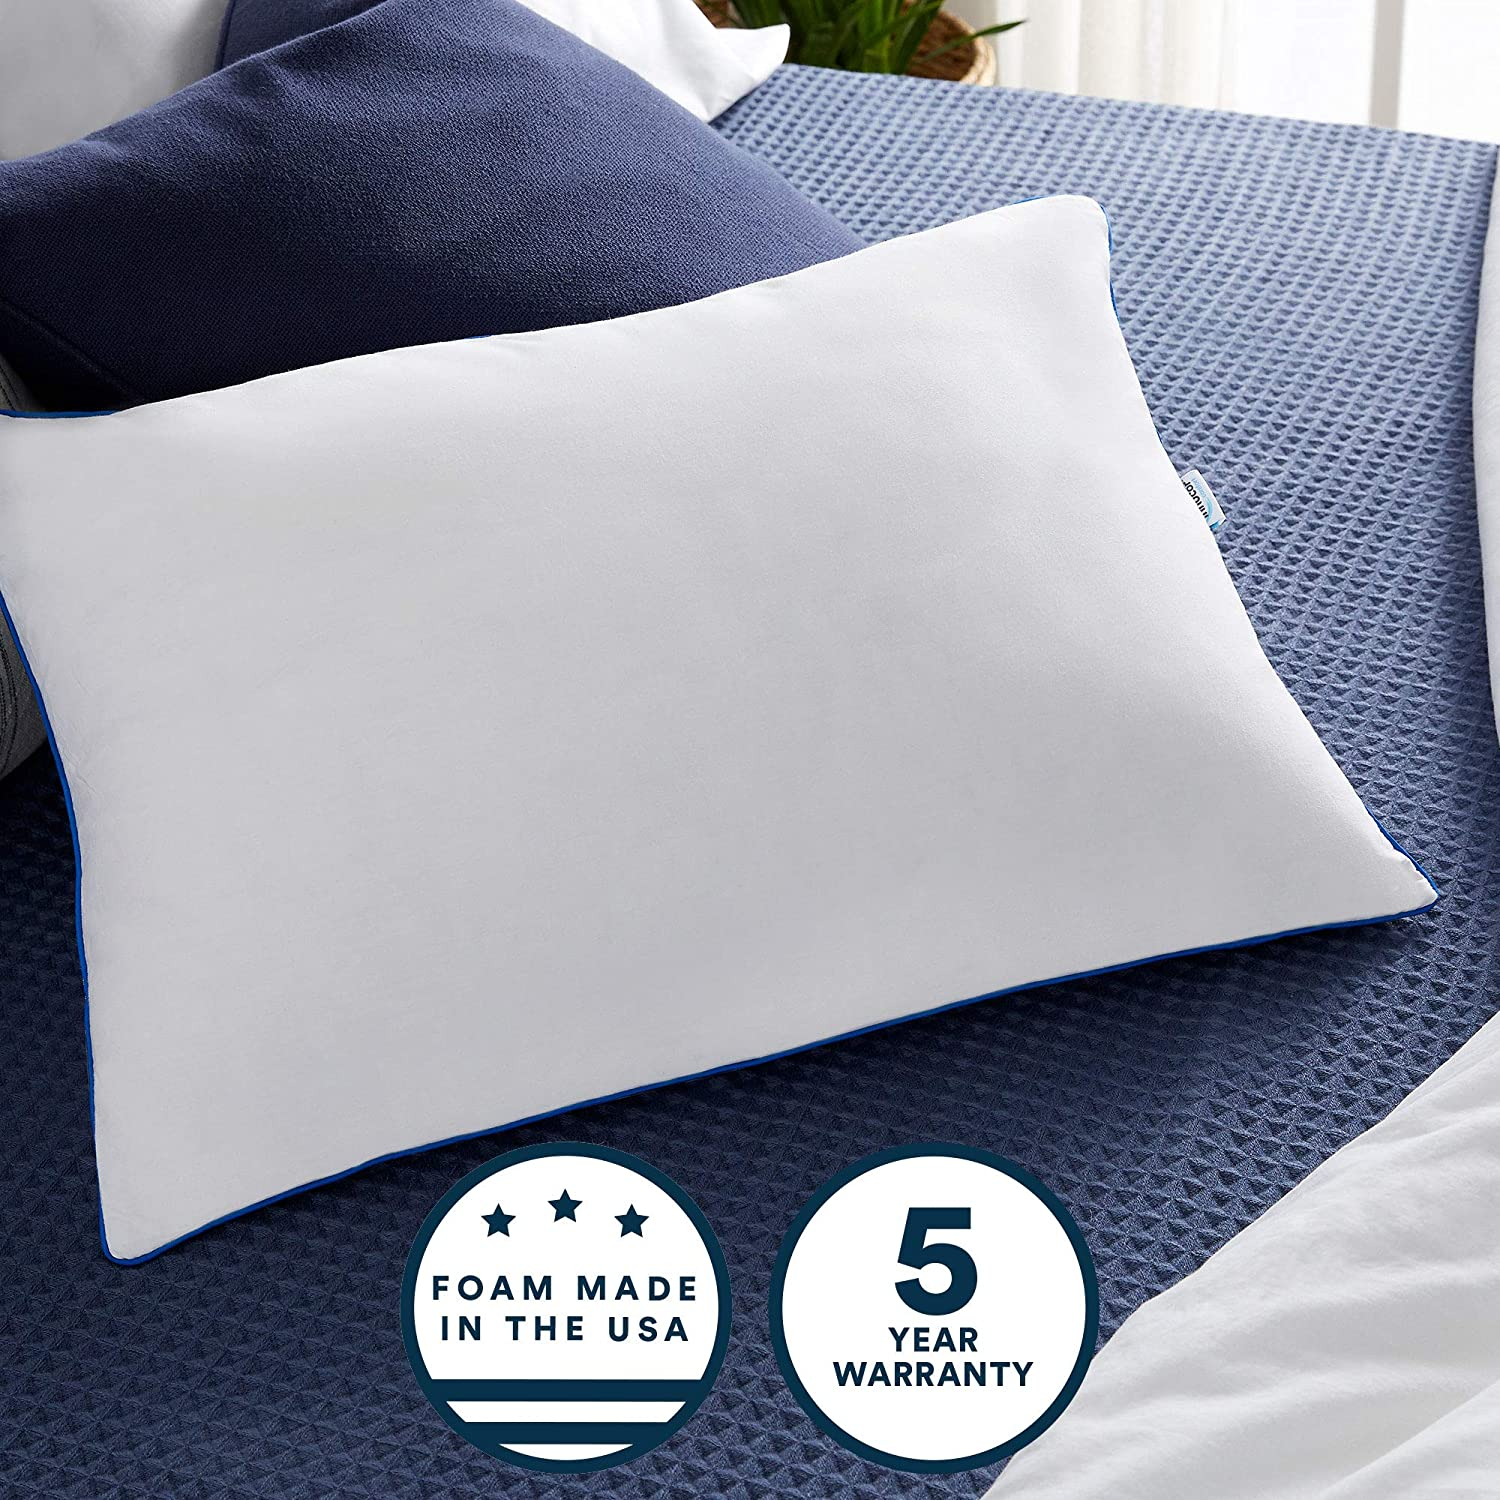 Sleep Innovations 2-in-1 Ventilated Gel Memory Foam Standard Pillow with Down Alternative Fiber Fill and Cotton Cover, Made in The USA with a 5-Year Warranty